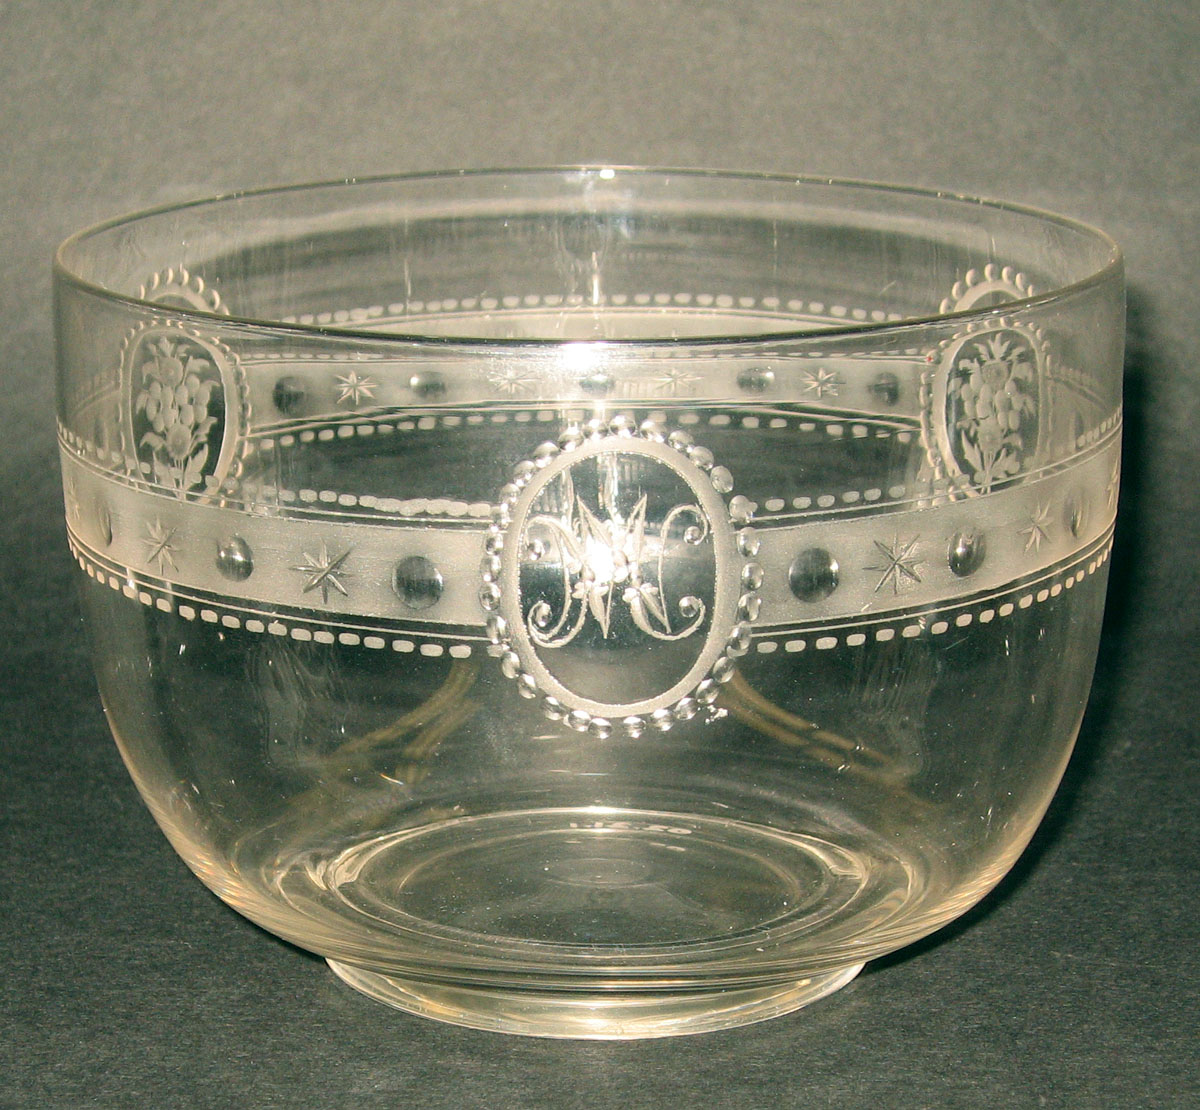 2002.0021.001 Glass finger bowl